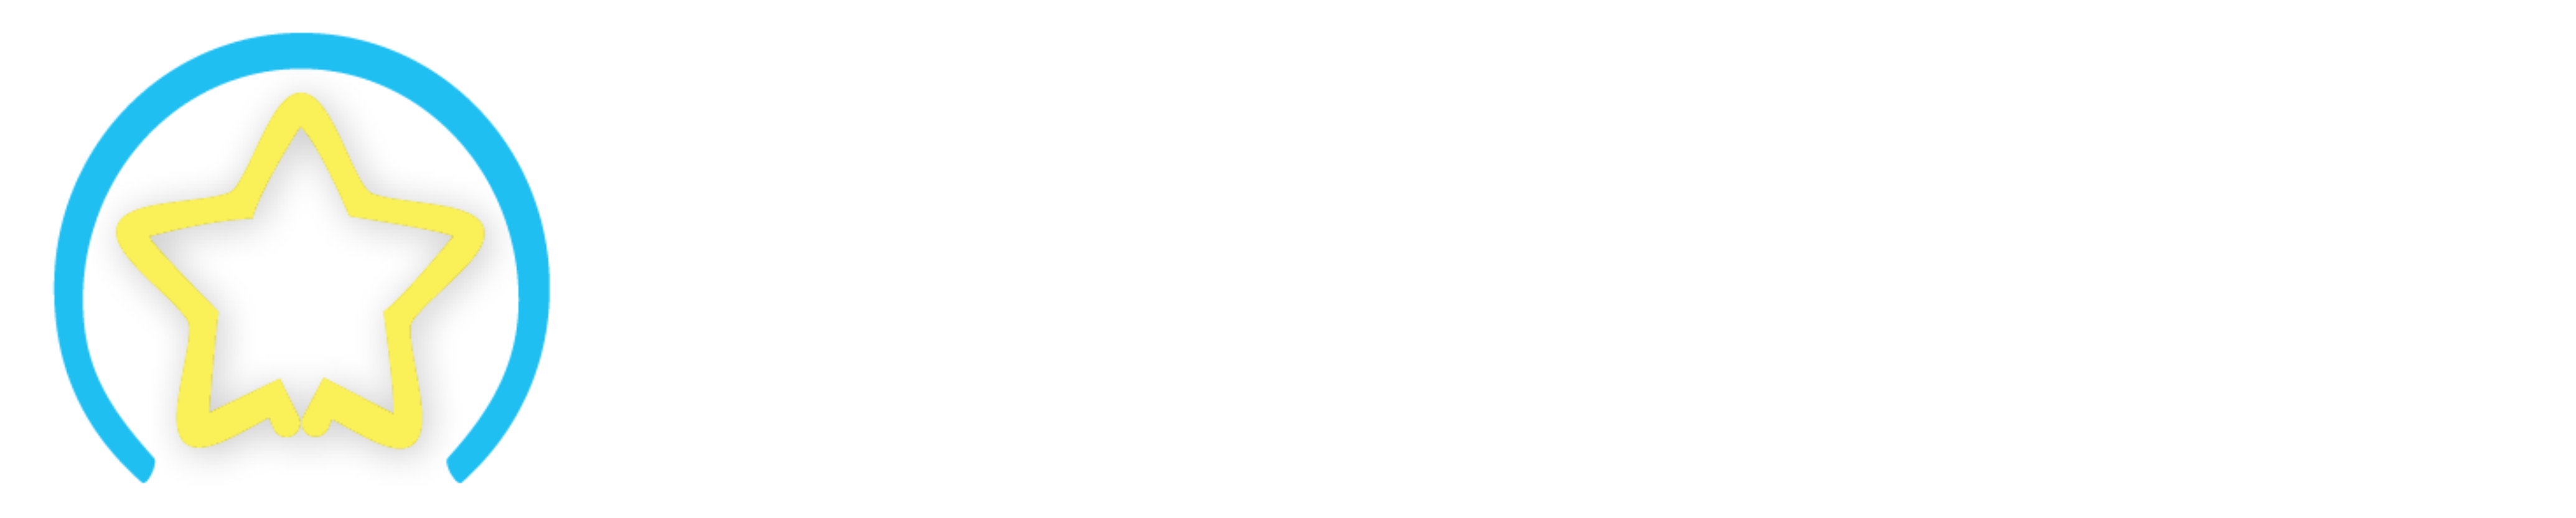 Al Whittle Theatre logo